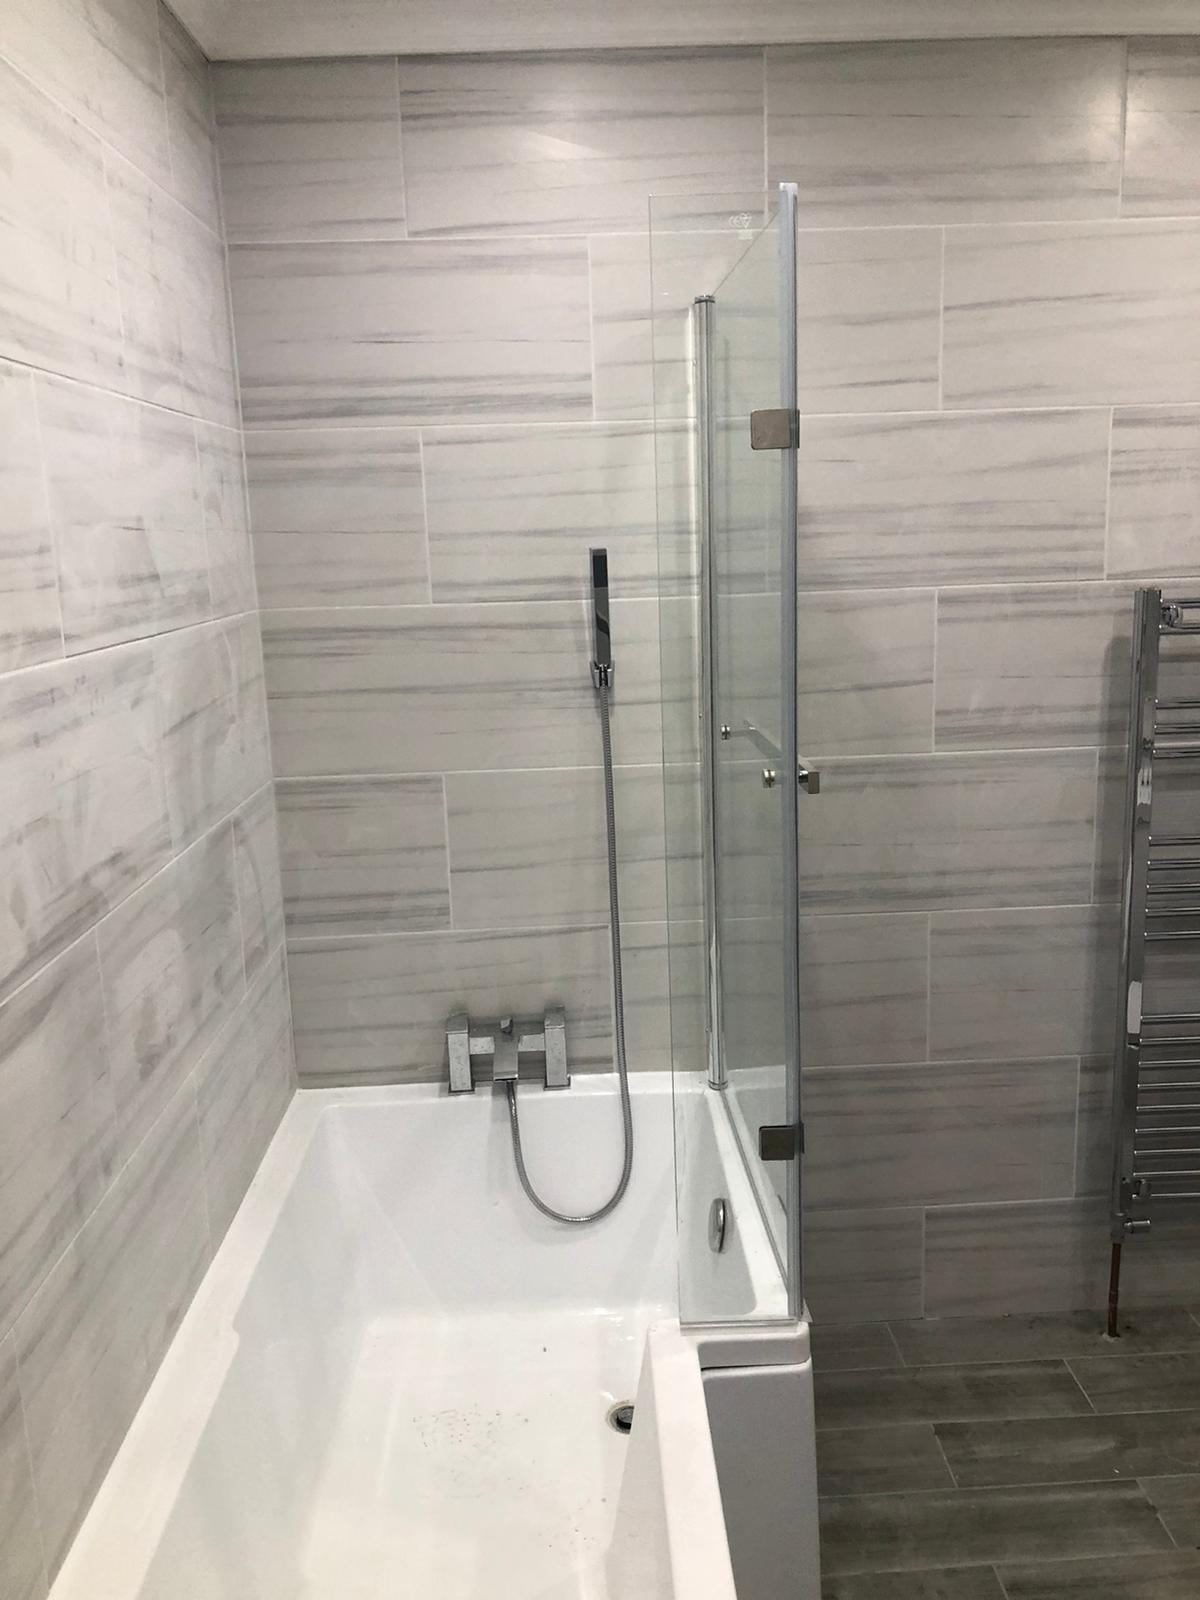 Bathtube with glass shild fitted by Birmingham Plumbing - Jack The Plumber